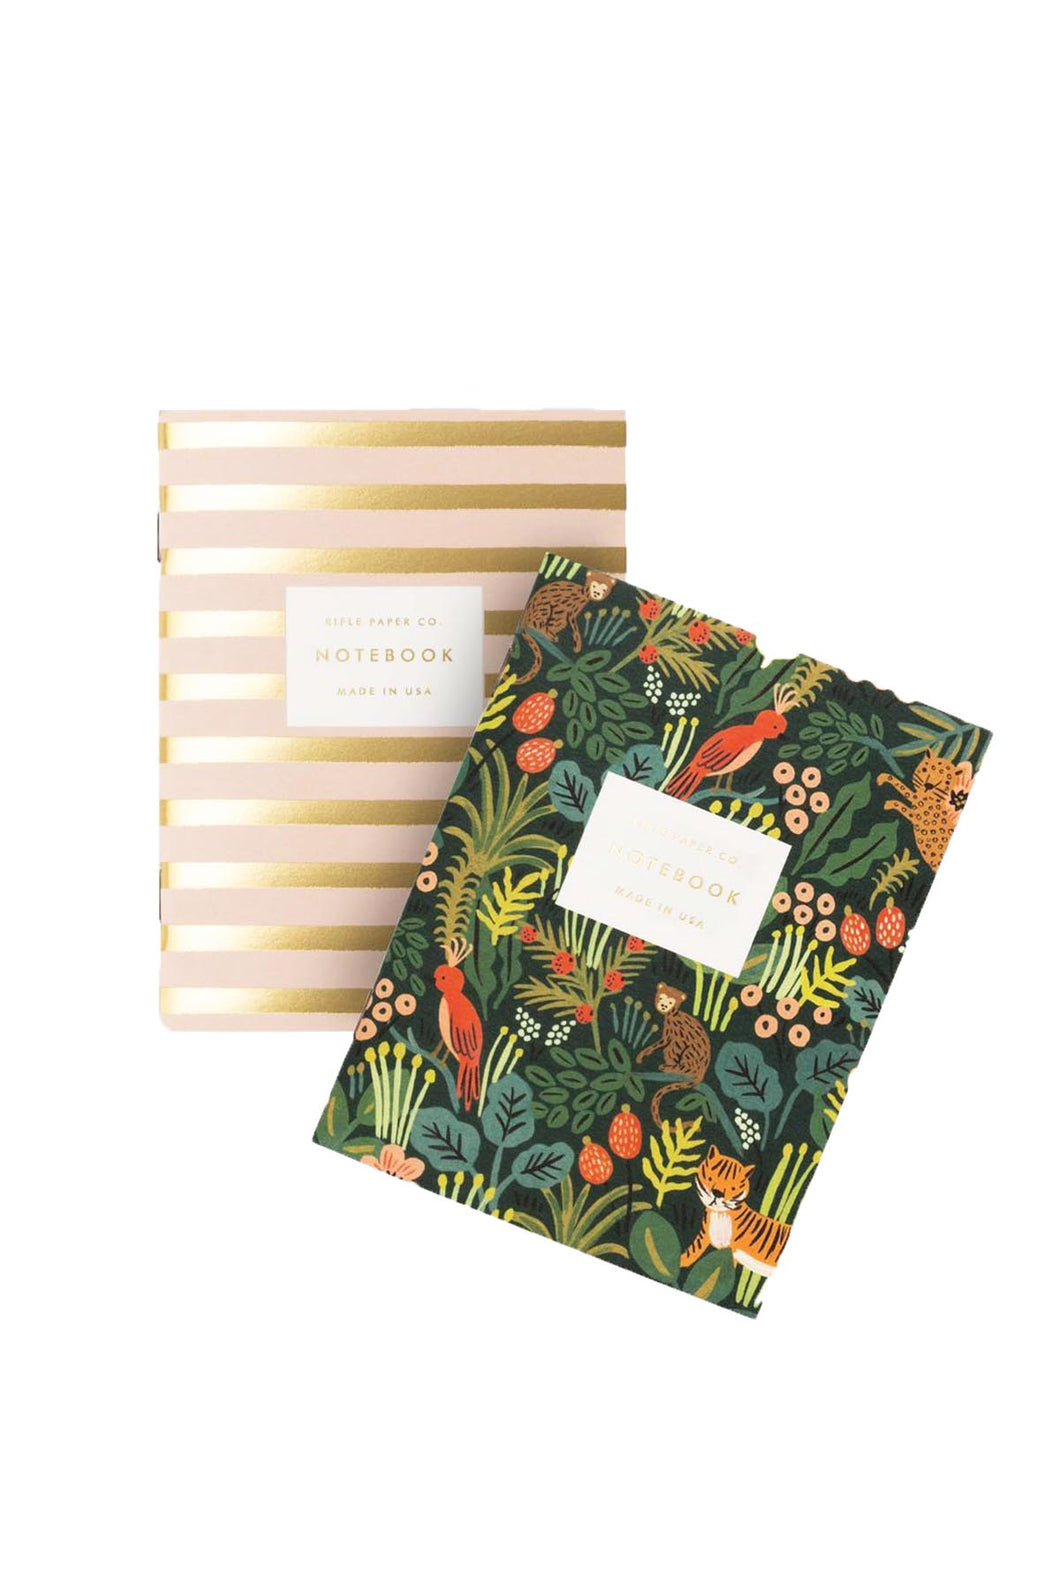 Pair of Pocket Notebooks - Jungle